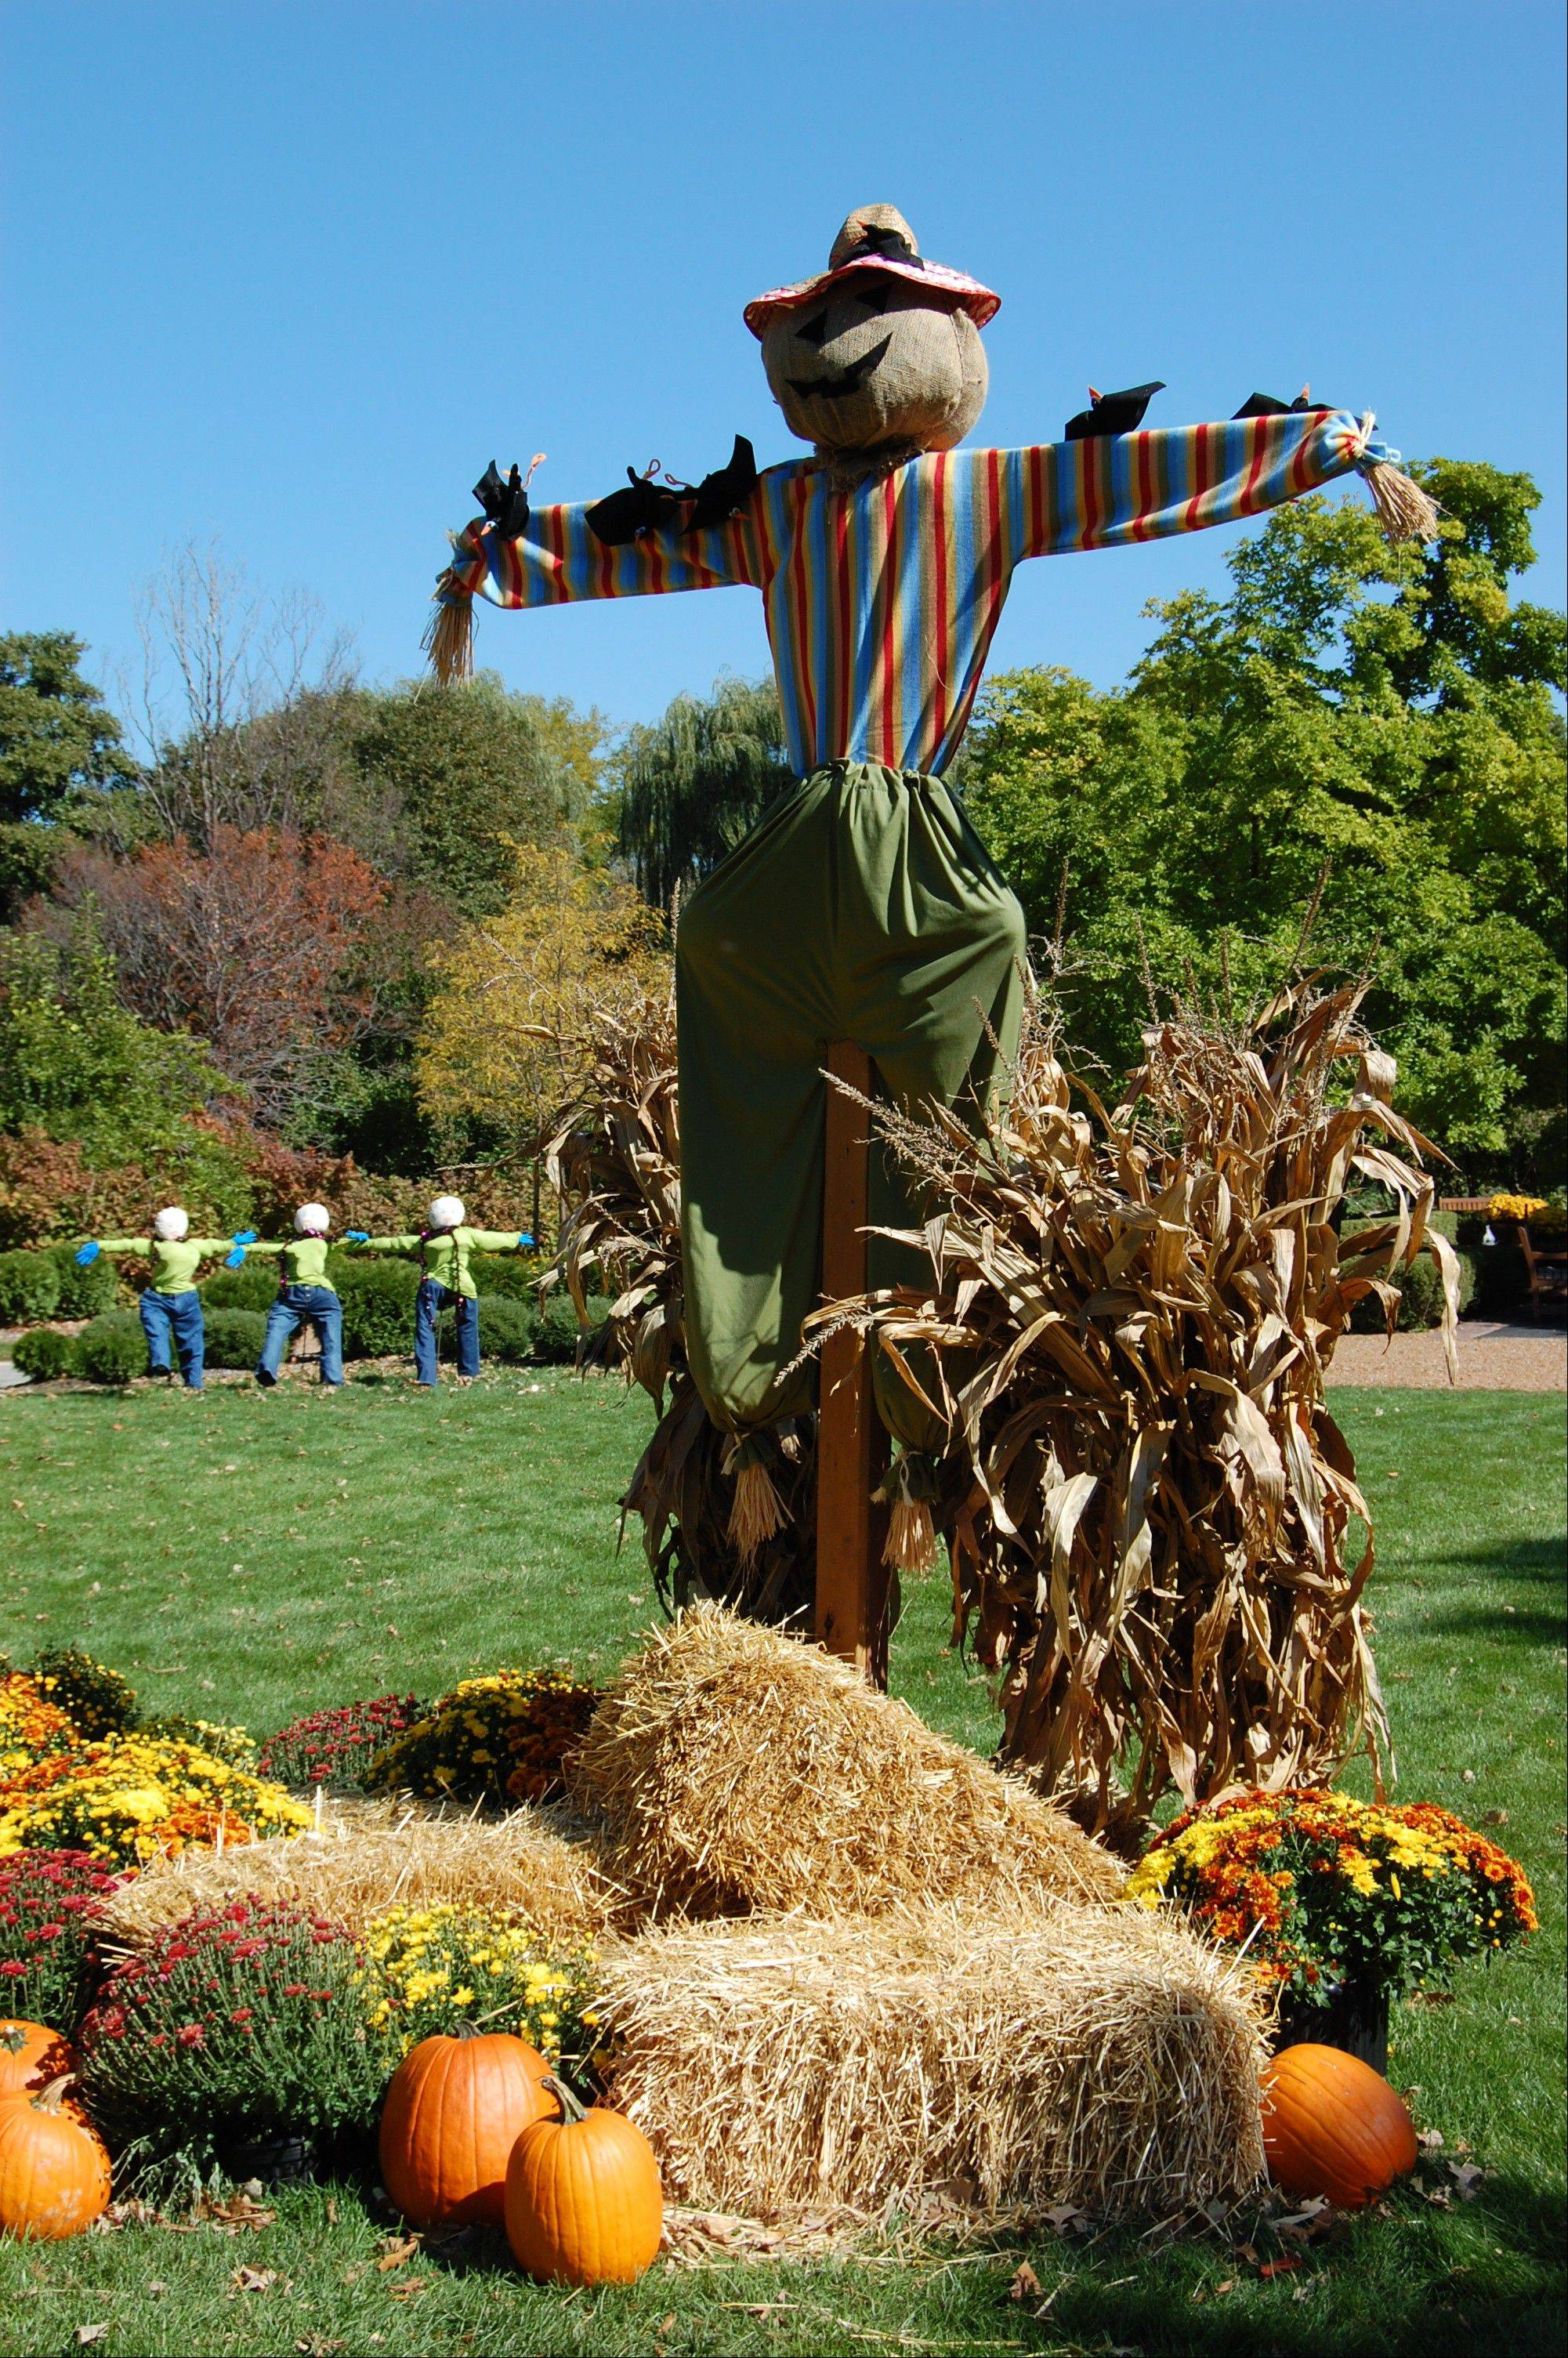 Decorative scarecrows, hayrides and pumpkin decorating are just part of the fun at Cantigny's Fall Festival.